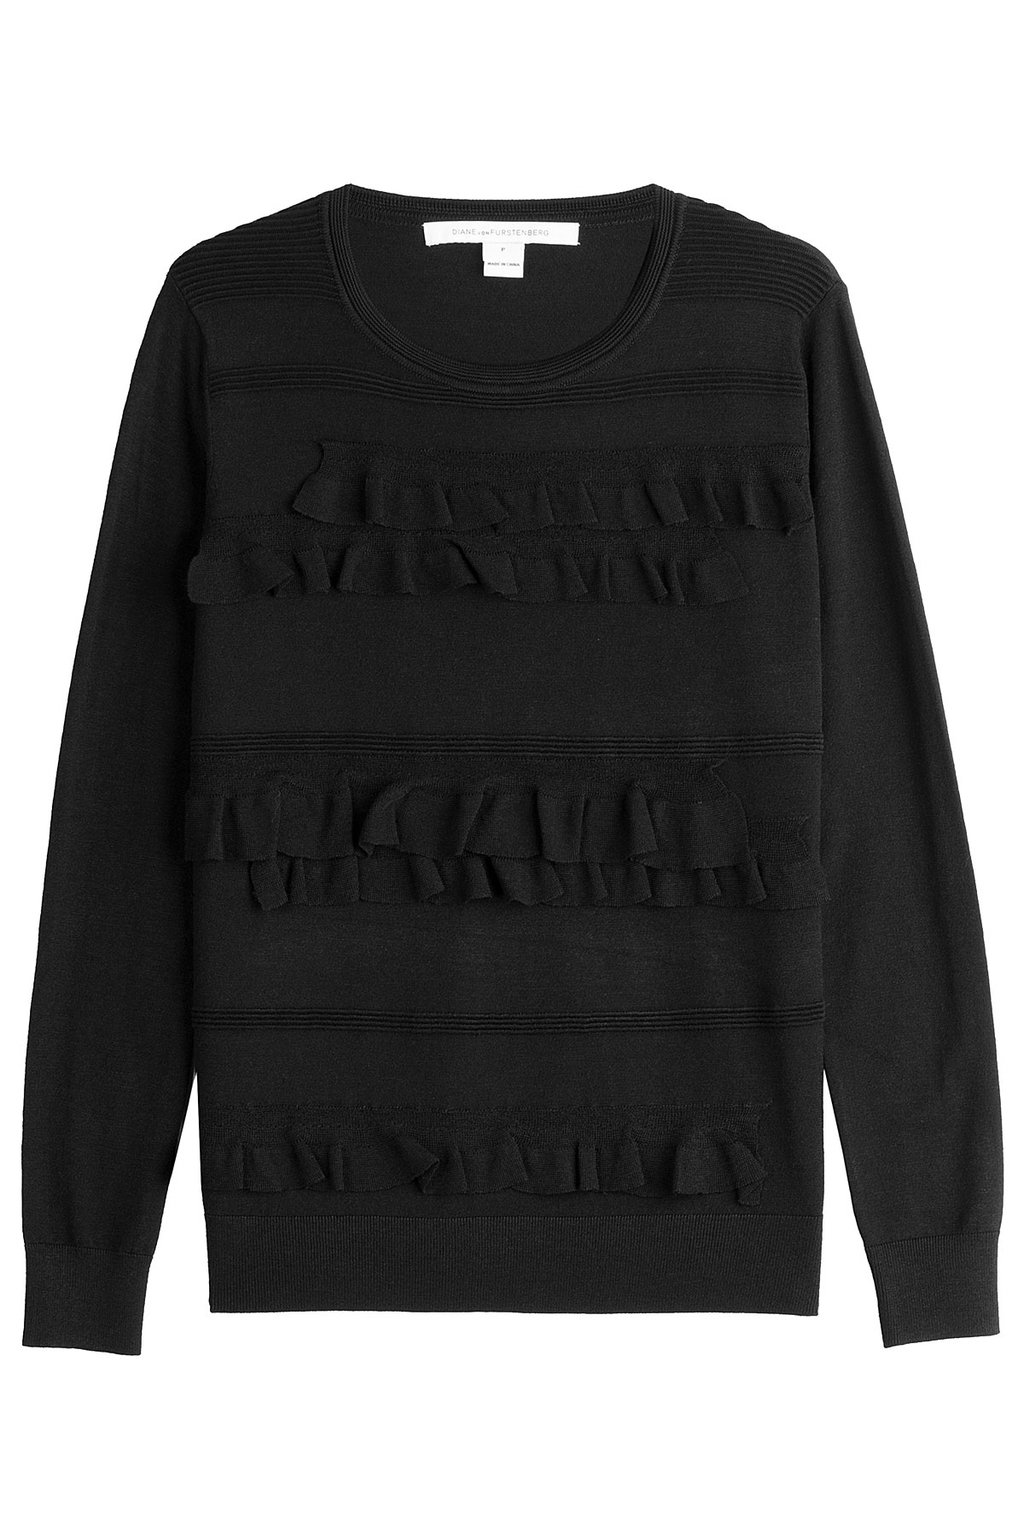 Knit Pullover With Ruffles Black - neckline: round neck; pattern: plain; style: standard; predominant colour: black; occasions: casual, creative work; length: standard; fibres: wool - stretch; fit: standard fit; sleeve length: long sleeve; sleeve style: standard; texture group: knits/crochet; pattern type: knitted - fine stitch; wardrobe: basic; season: a/w 2016